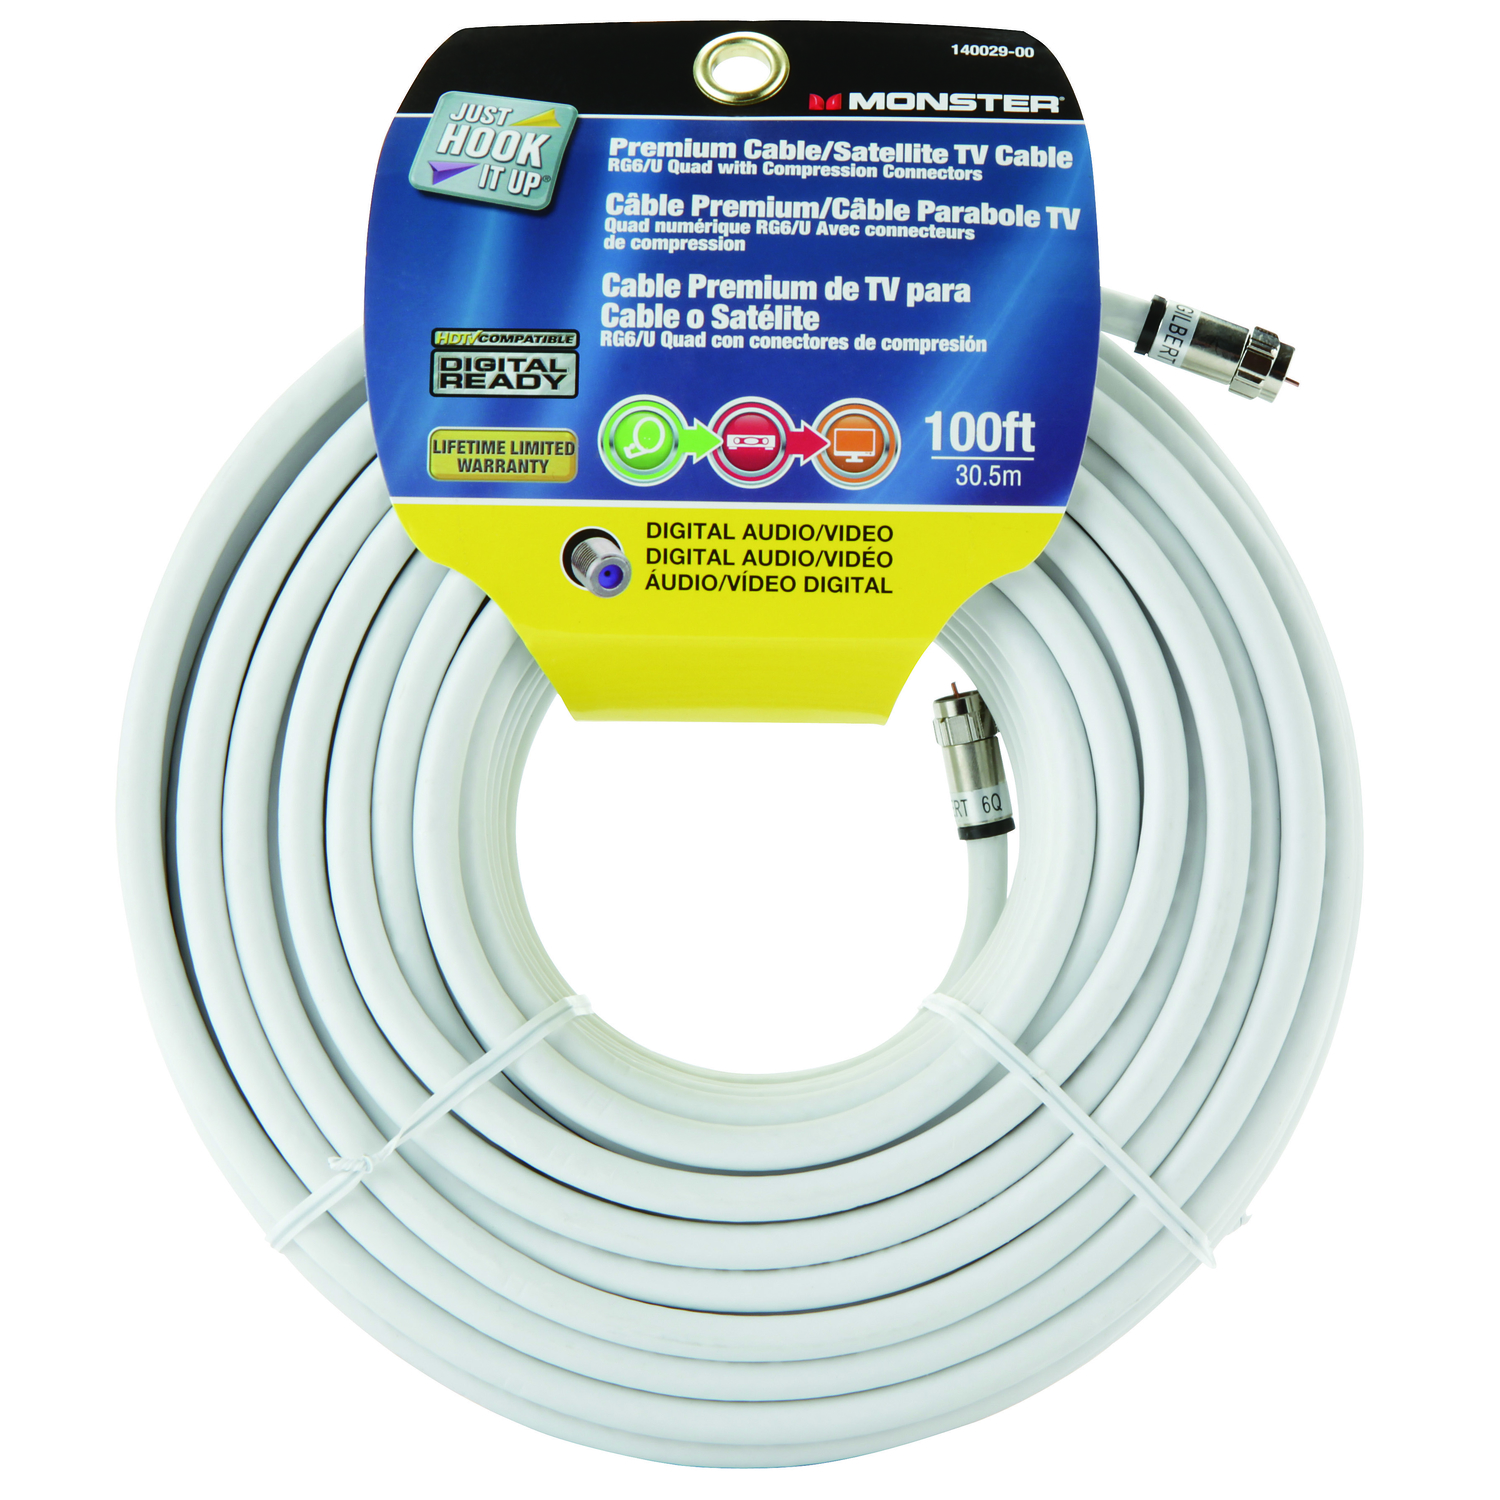 Monster Cable  Just Hook it Up  Weatherproof Video Coaxial Cable